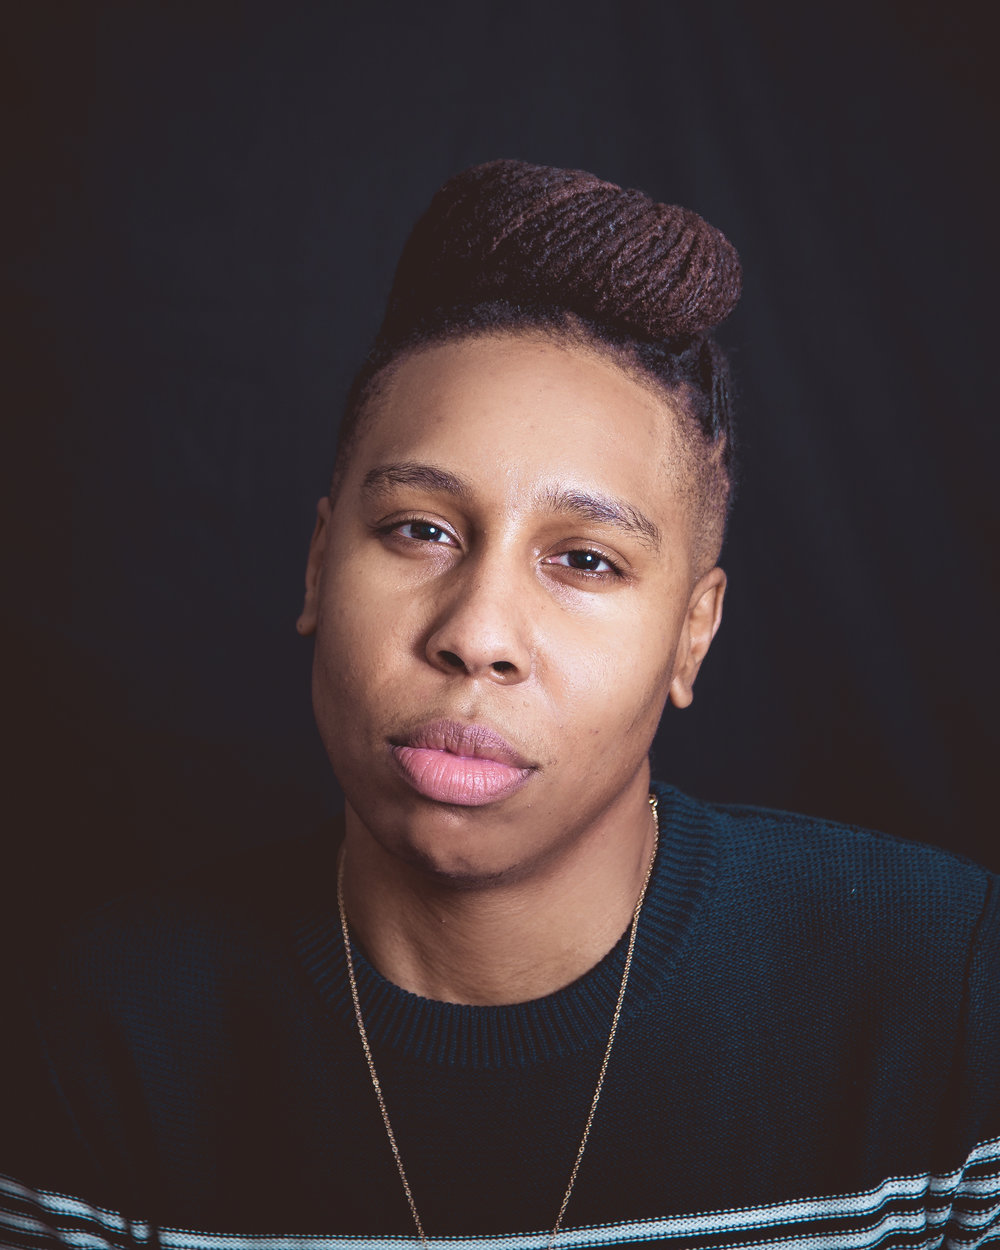 "Lena Waithe   Hailing from Chicago's South Side, writer, producer, and actor Lena Waithe is currently at the helm of Showtime's new drama series THE CHI.  Waithe got her start working alongside Mara Brock-Akil, Gina Prince-Bythewood, and Ava Duvernay on various projects. She was also just named one of The Hollywood Reporters' Fall 2015 Ten TV Breakout Stars for her role on Netflix's award-winning MASTER OF NONE, and was named as one of Variety's 2014 ""Top 10 Comics to Watch."" Waithe produced the Sundance darling DEAR WHITE PEOPLE, and is set to produce Broad Green's upbeat comedy, STEP SISTERS, along with Matt Alvarez and Benjamin Cory Jones. She also has a half-hour comedic pilot in development."